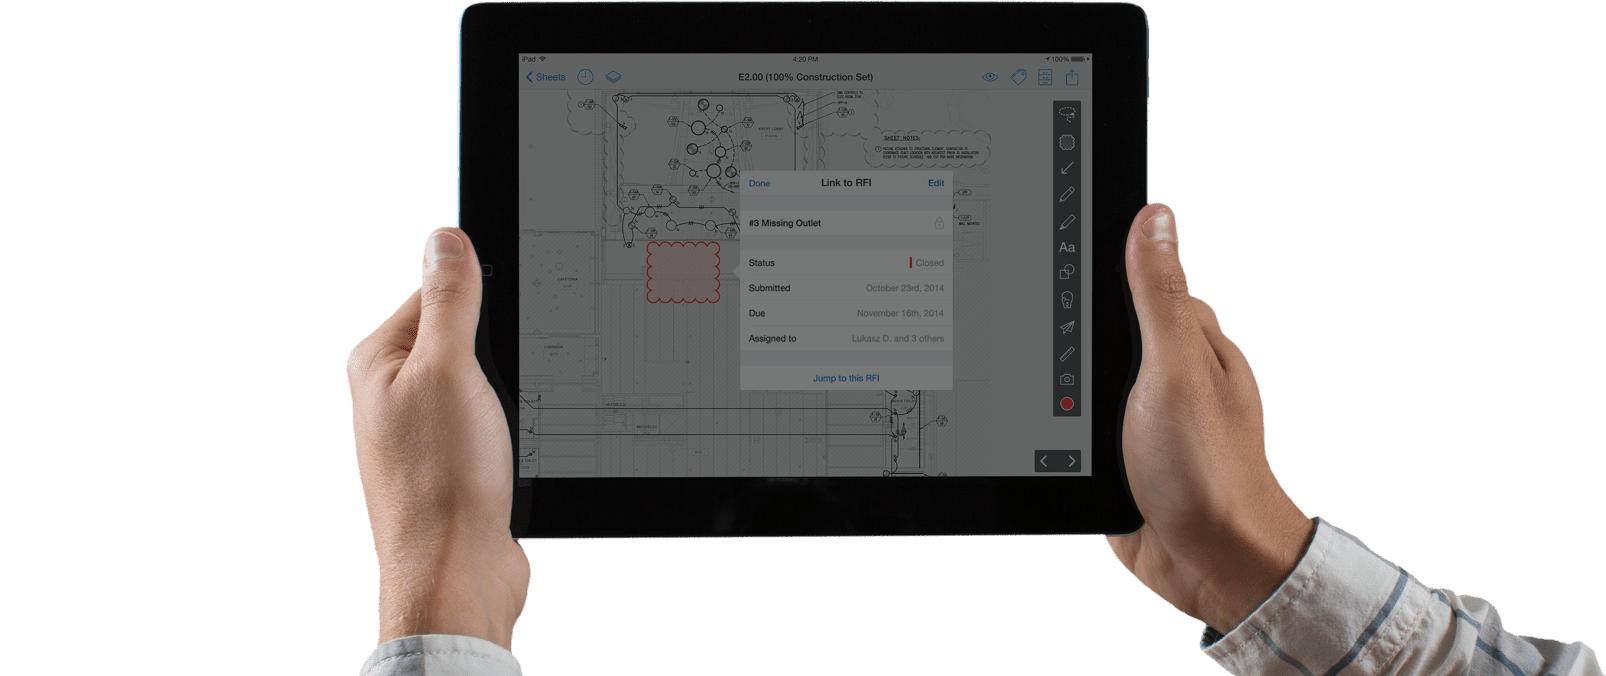 Top 10 Must-Have Smartphone Apps for Construction Work